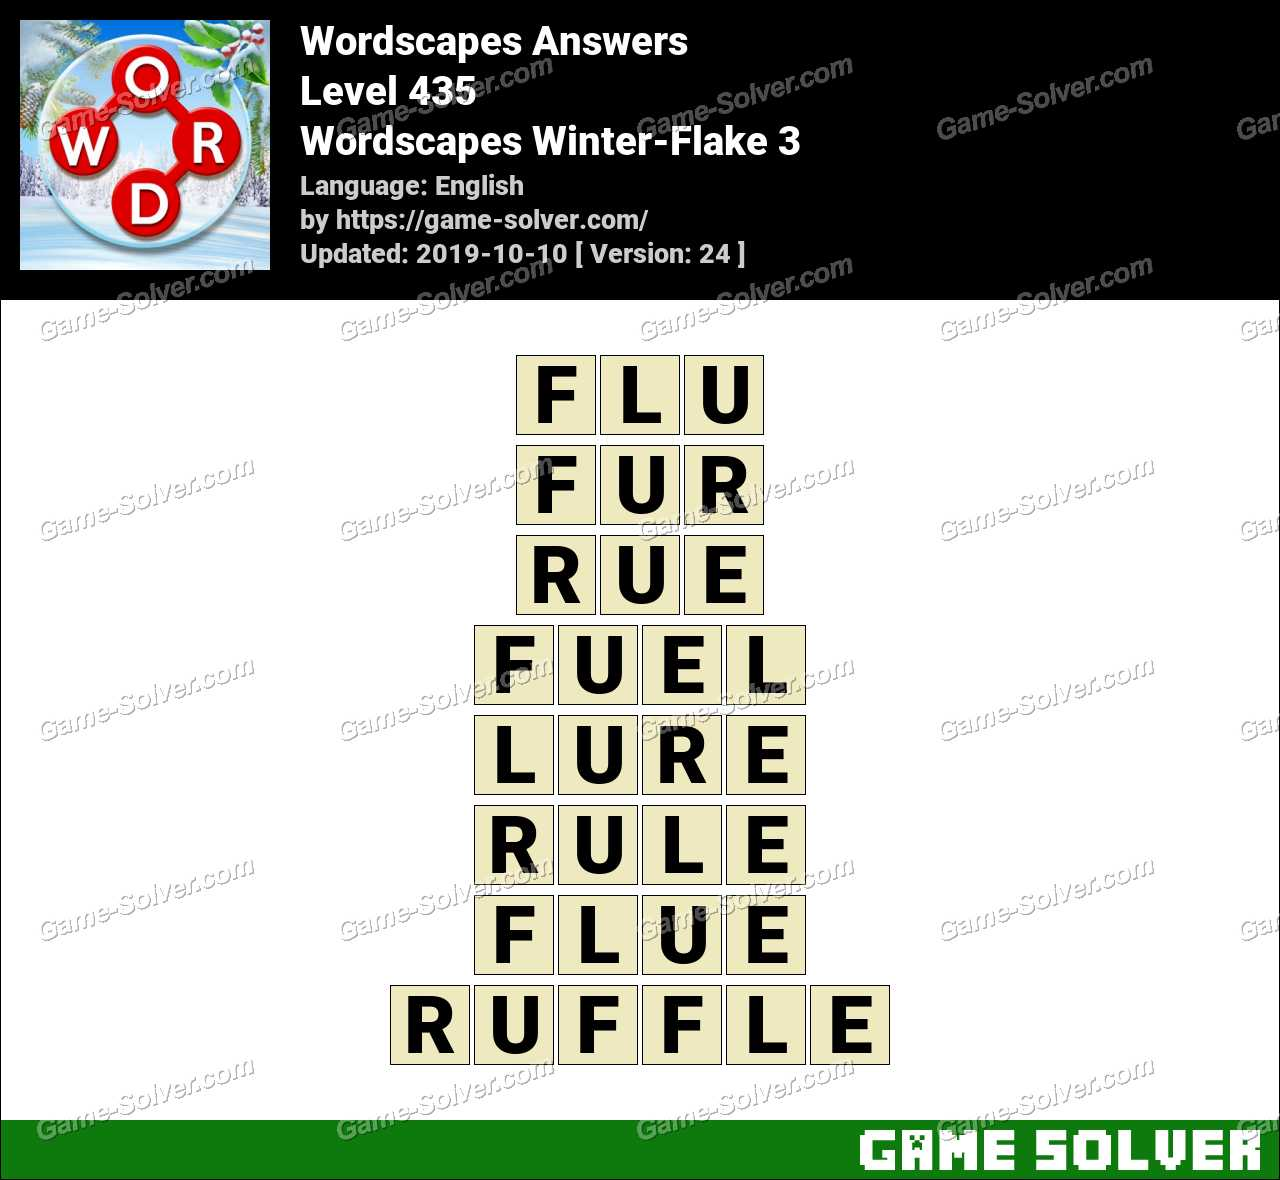 Wordscapes Winter-Flake 3 Answers